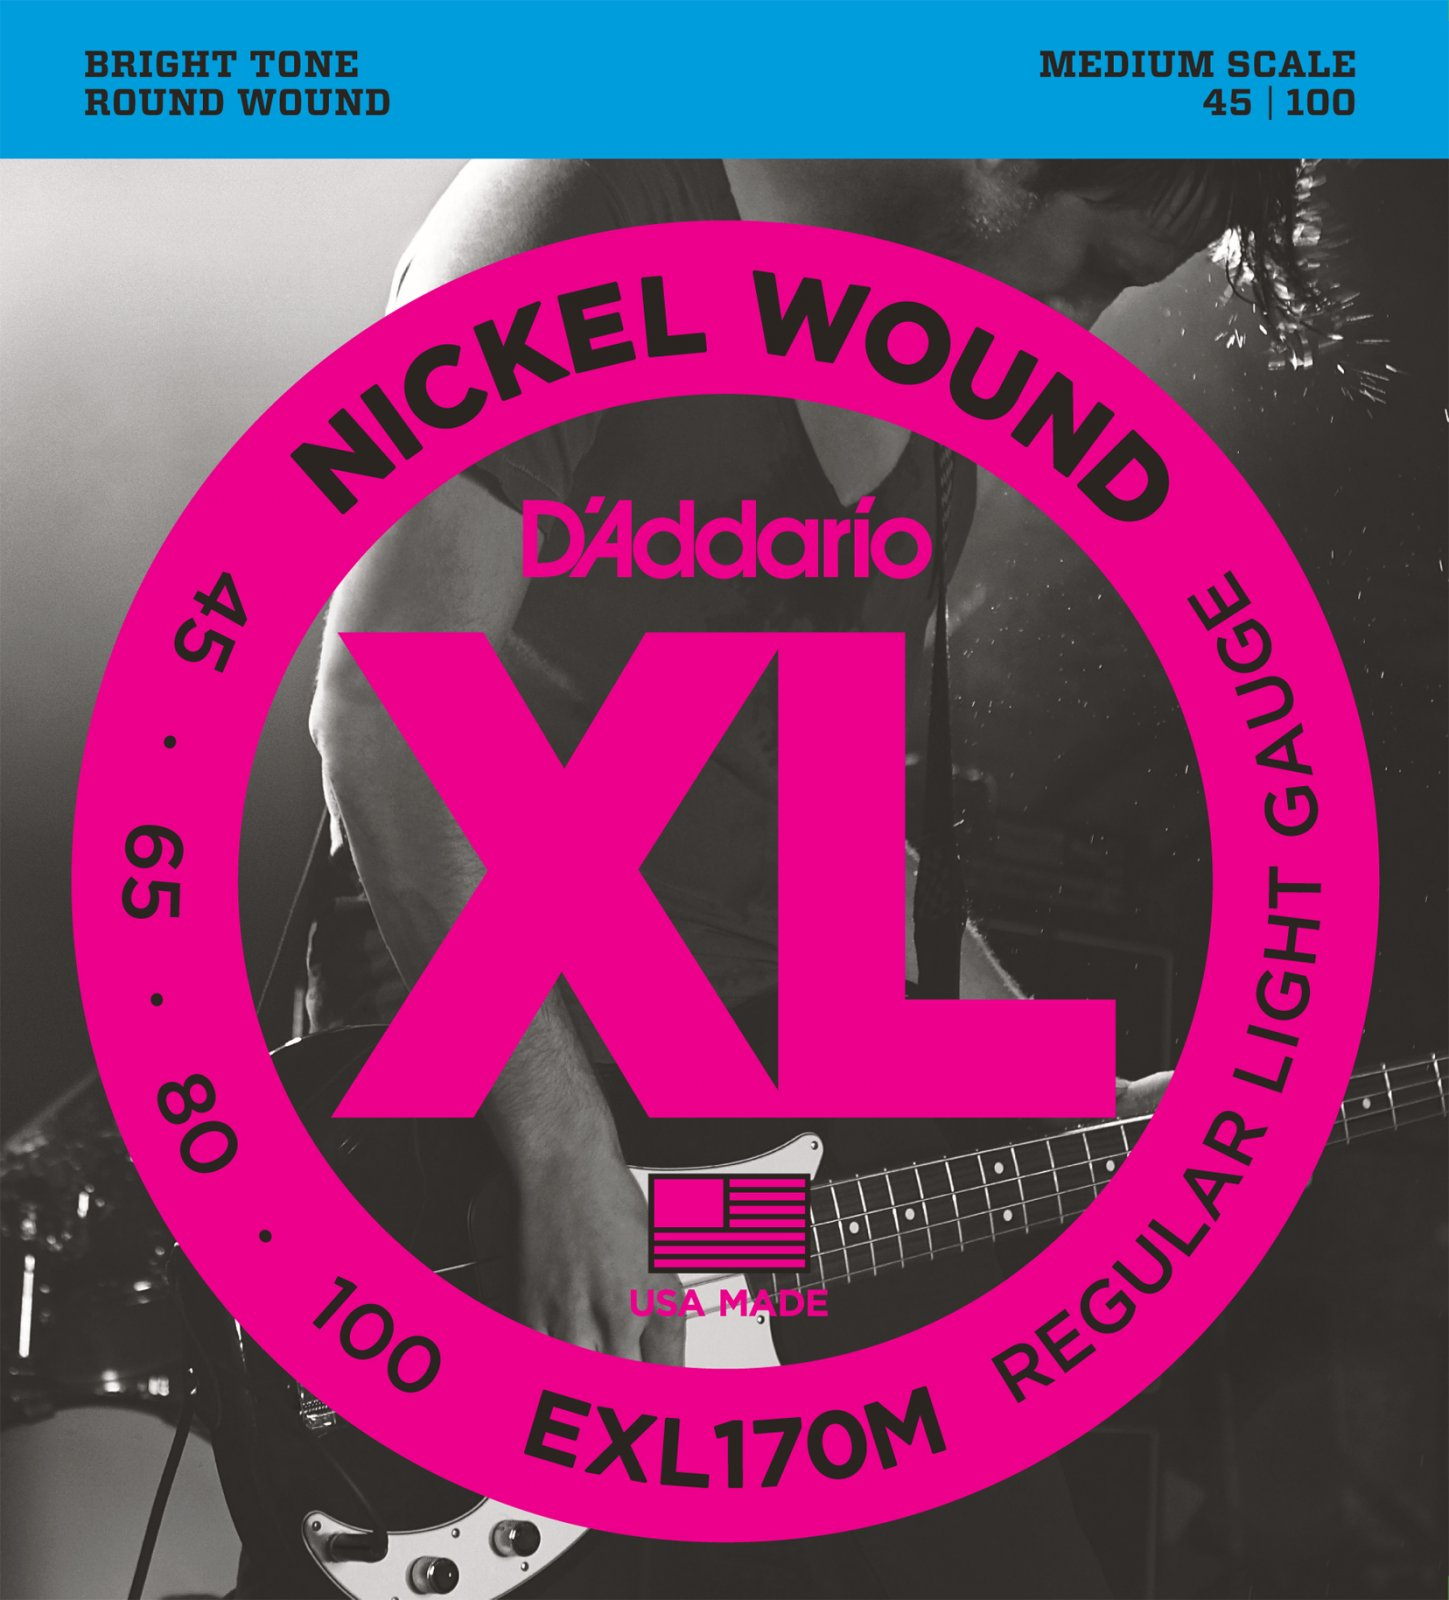 D'Addario EXL170M Nickel Wound Electric Bass Light 45-100 Medium Scale